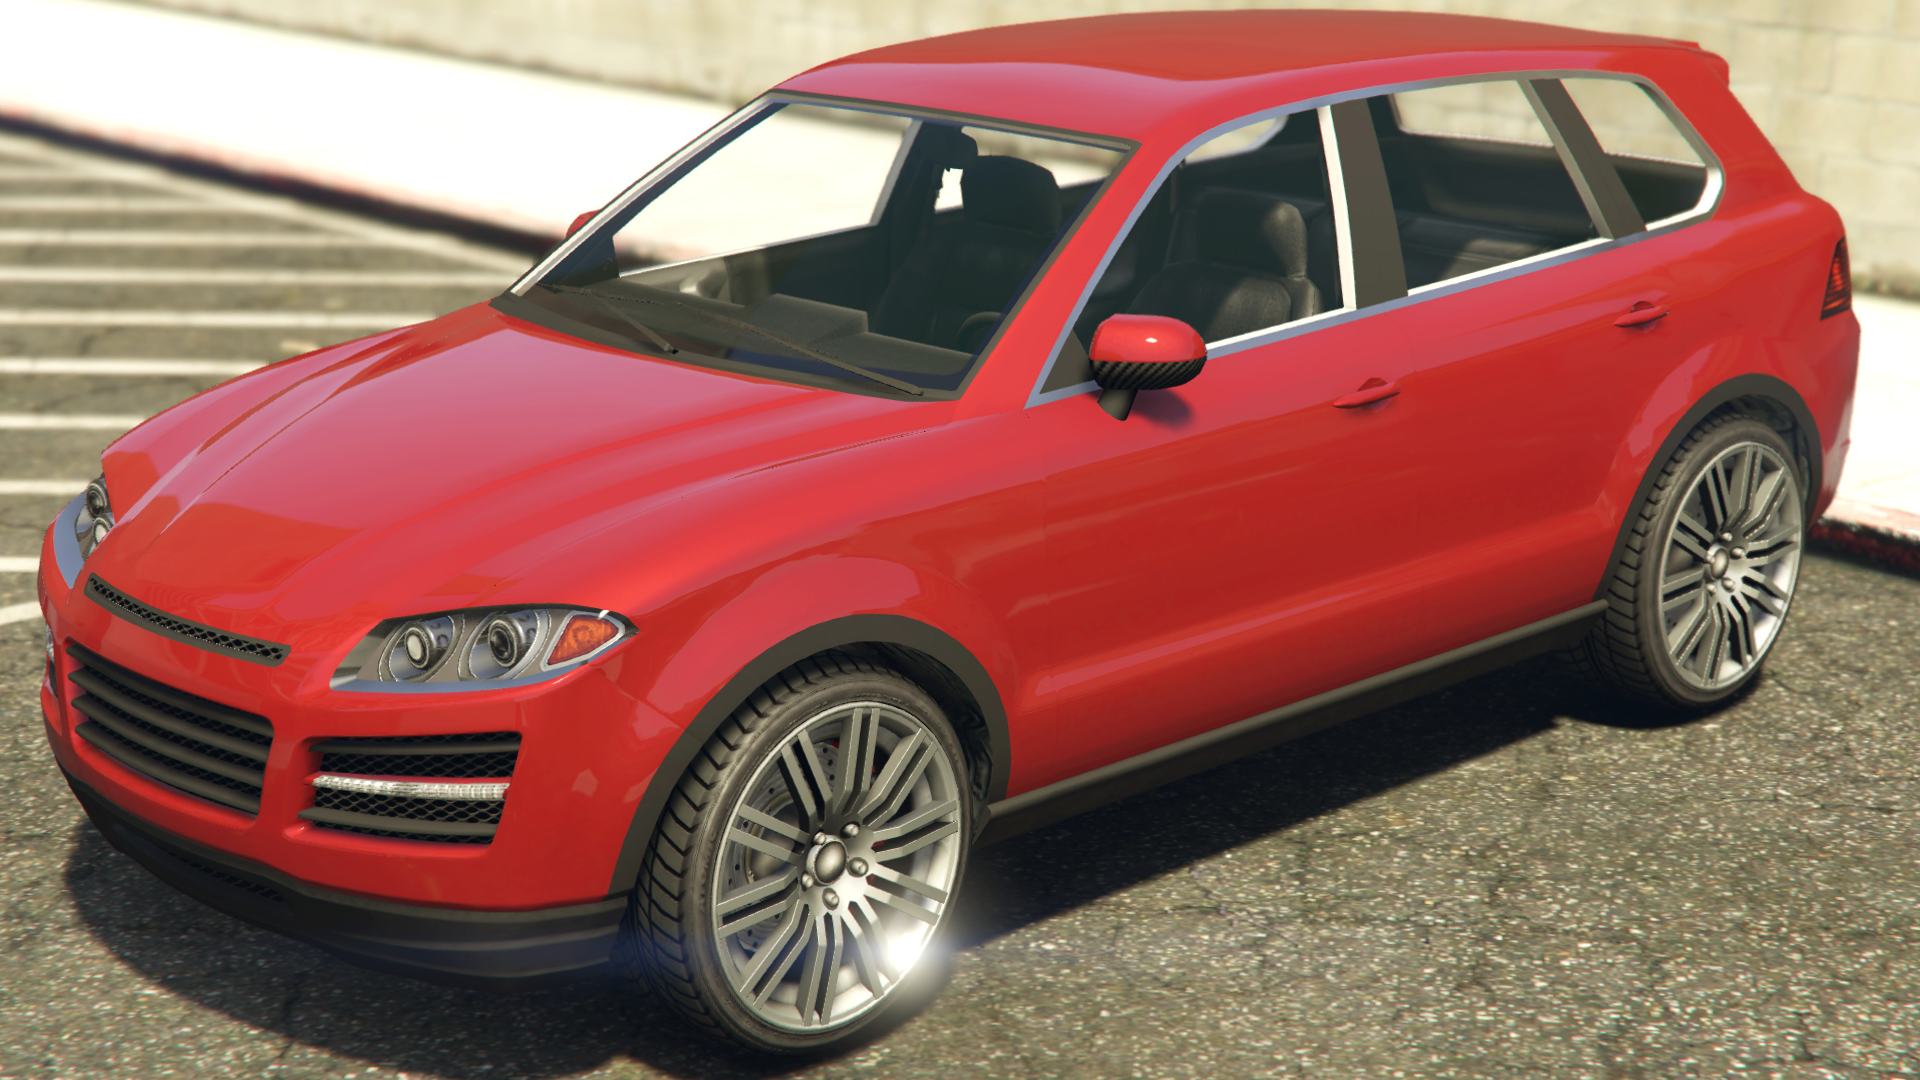 54725 Gta V Obey 9f Tuning Rims likewise Prueba 8000vueltas Los Mejores Deportivos Del Gta V moreover 56479 Gta 5 Obey 9f Coupe Ivf moreover File Zentorno GTAV Rear in addition 18589 New Euros. on 9f gta iv